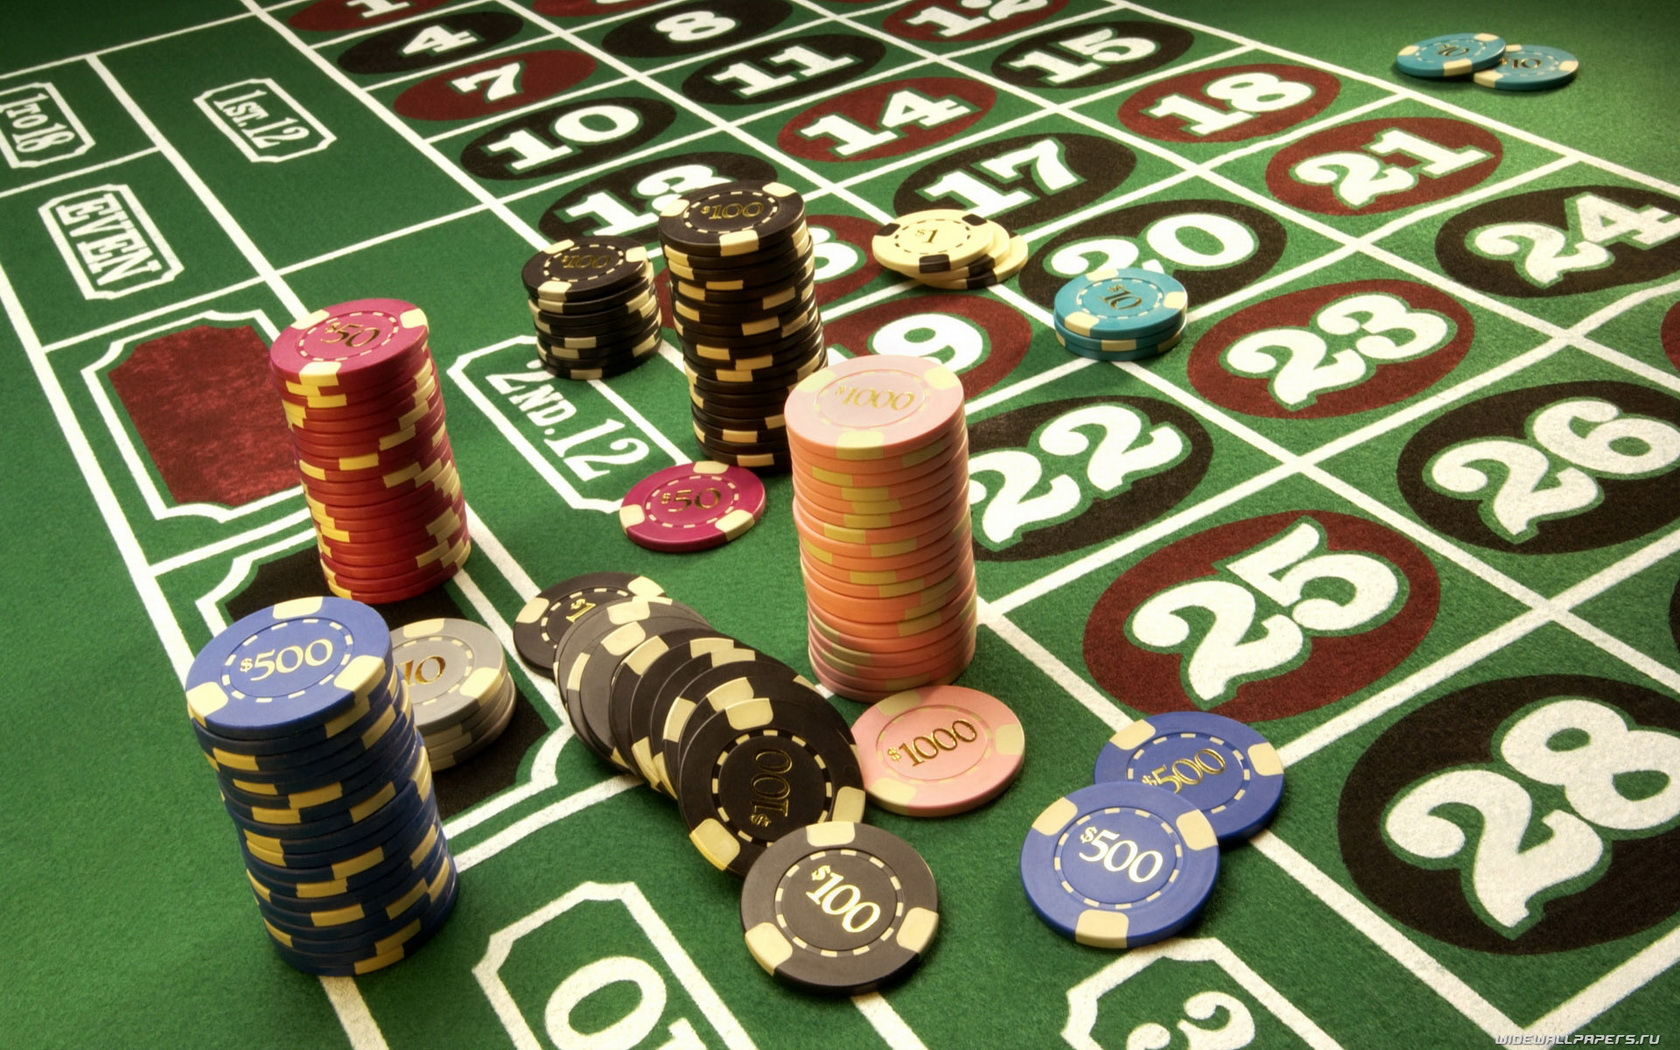 What is an online casino? Is it legal or illegal to play at the online casino?